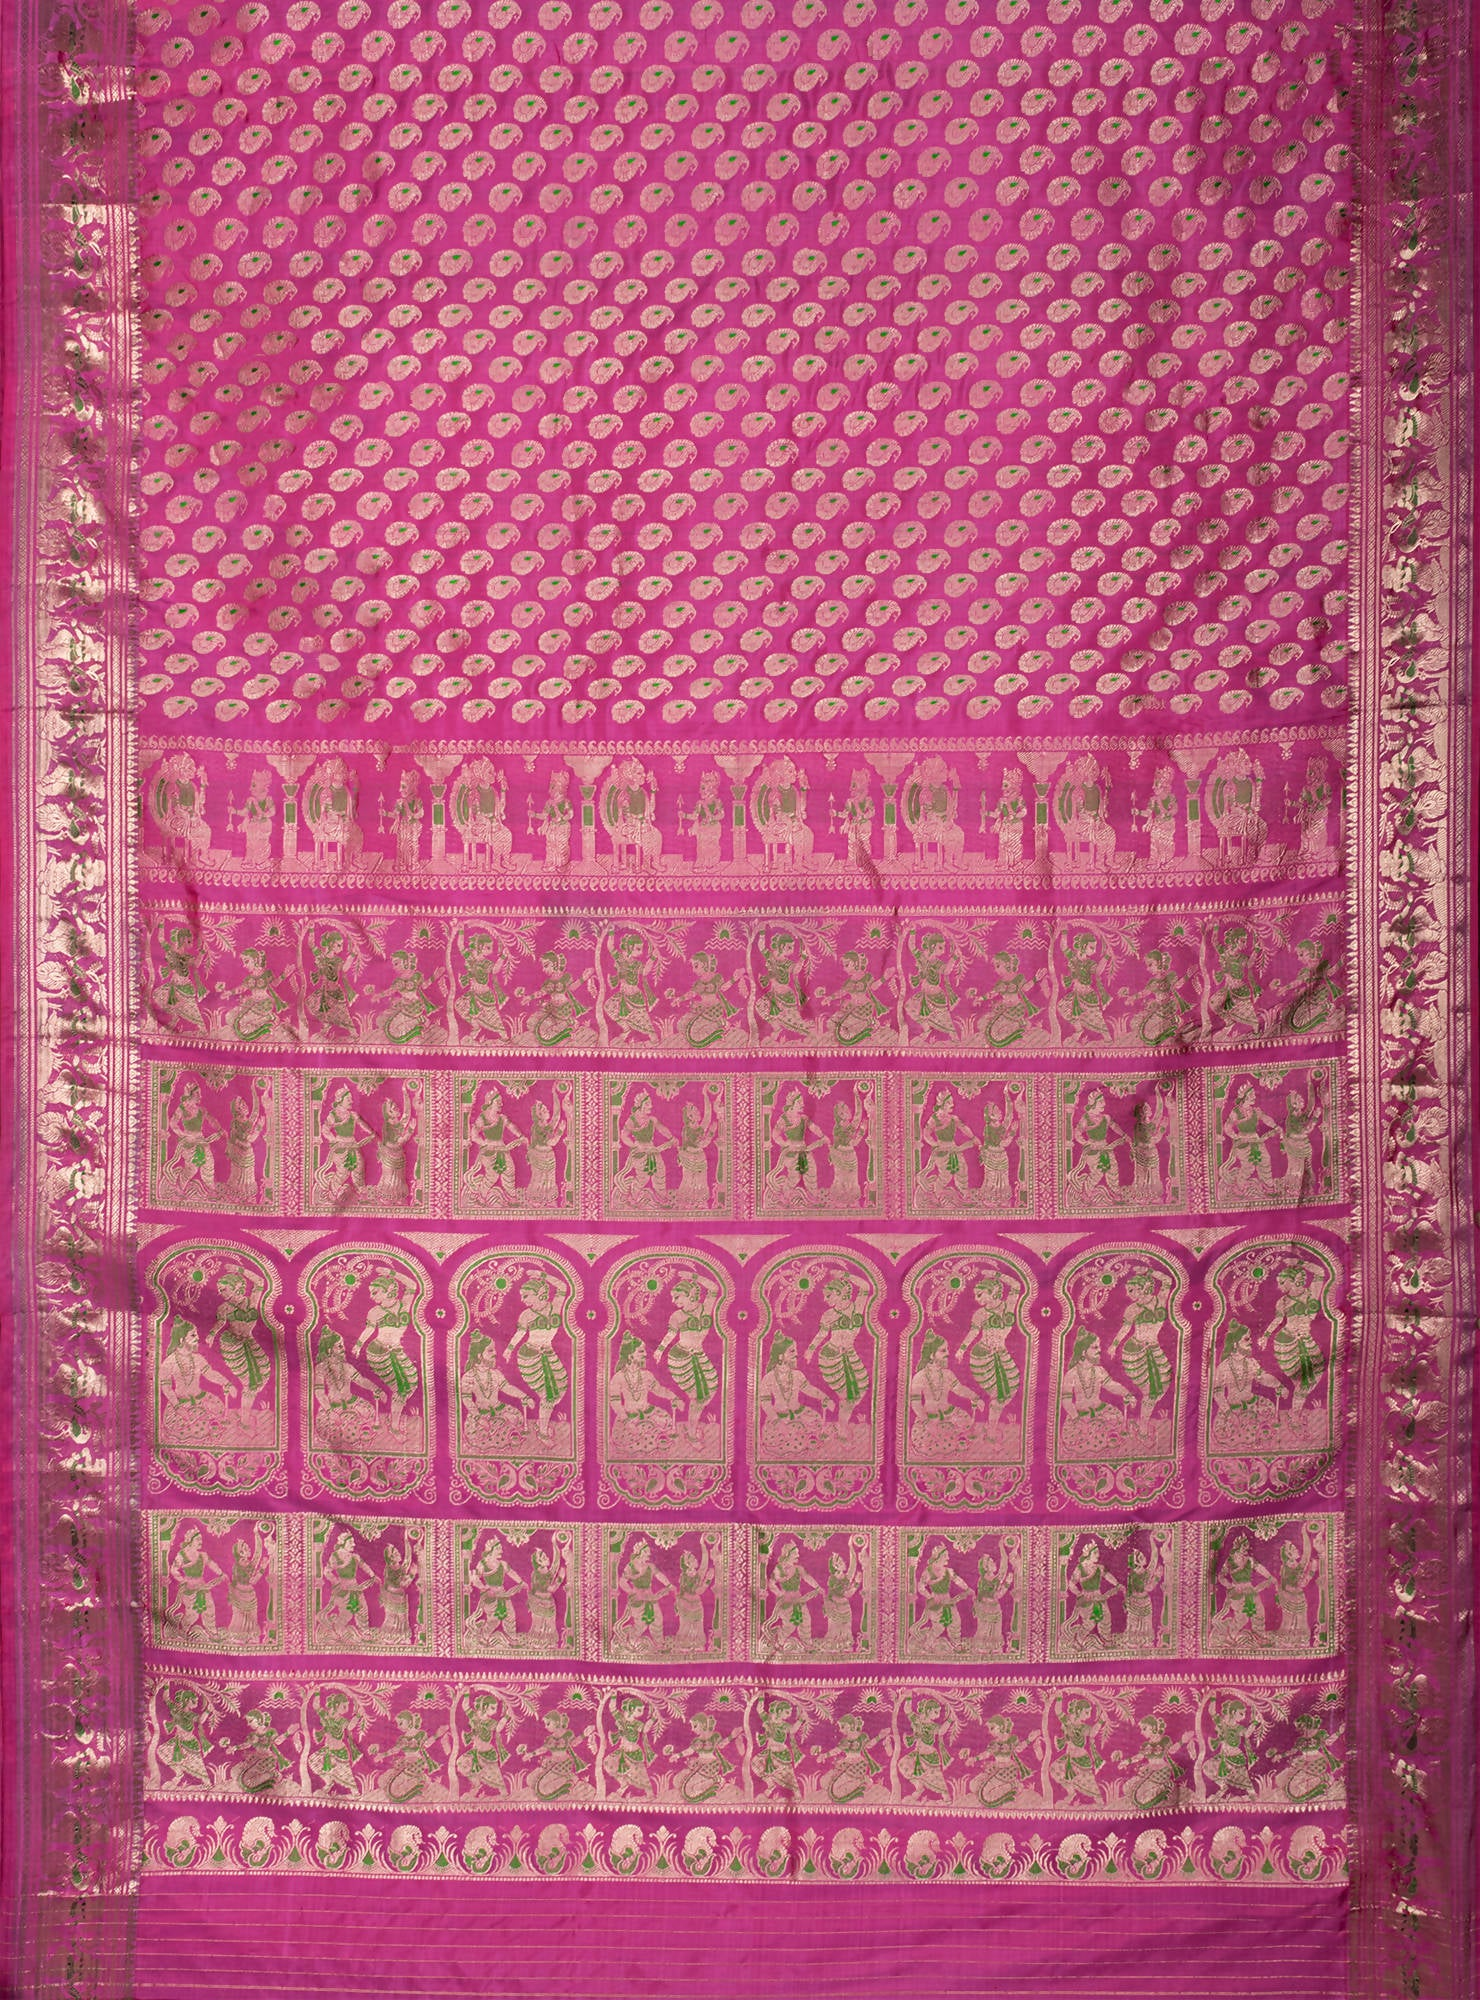 Biswa Bangla Handwoven Pink Baluchari Silk Pargalani Saree